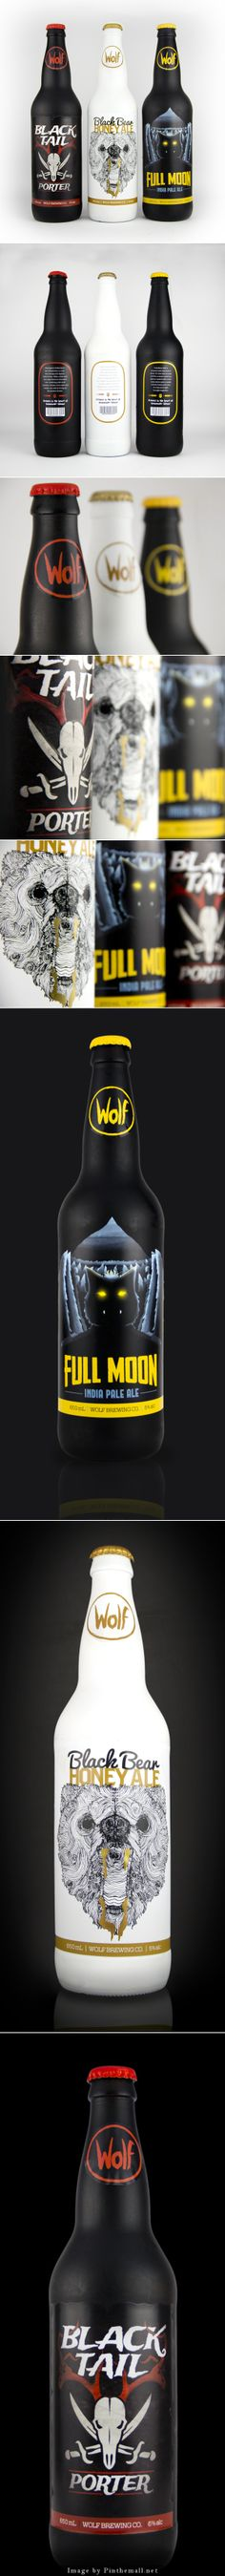 Wolf Brewing here's a few beer creatures for you packaging curated by Packaging Diva PD